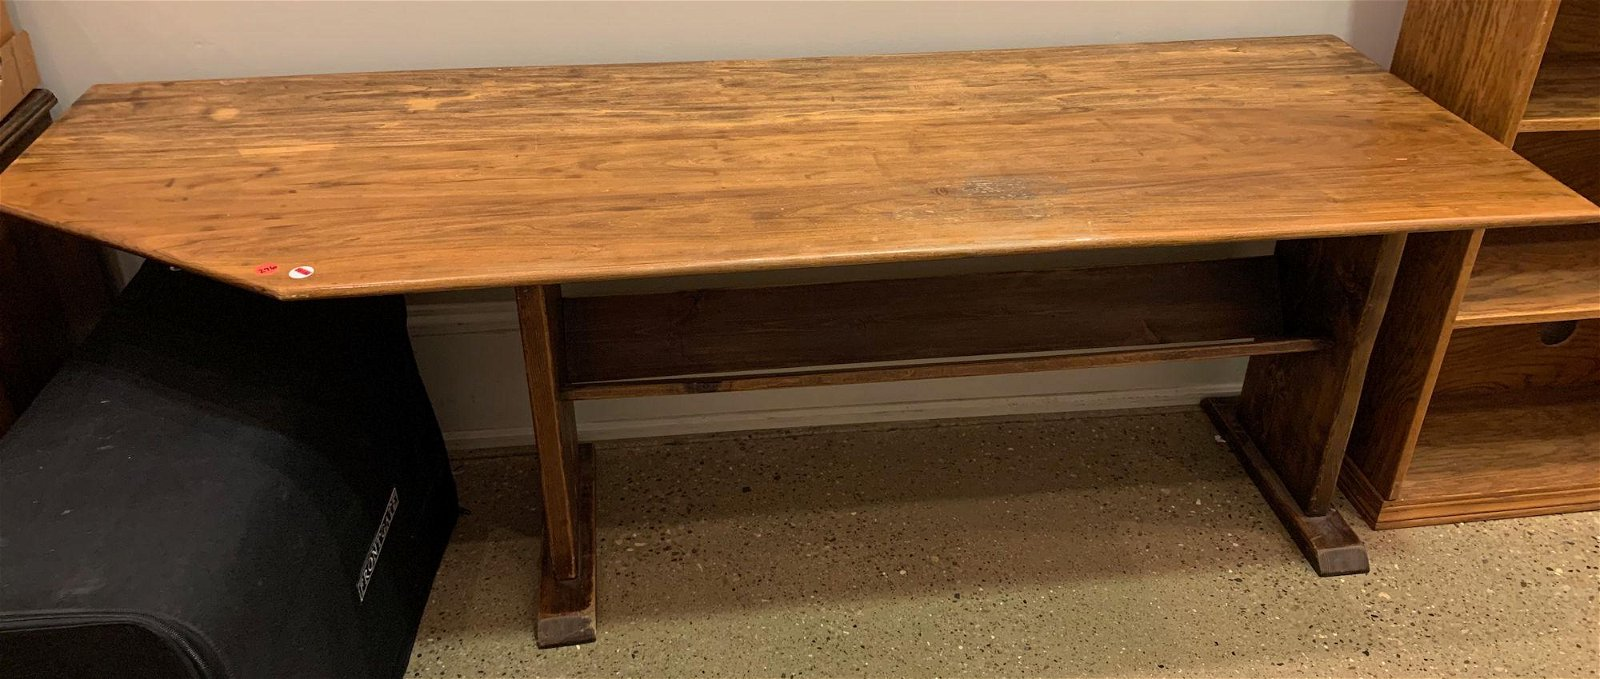 LARGE WOODEN SIDE TABLE